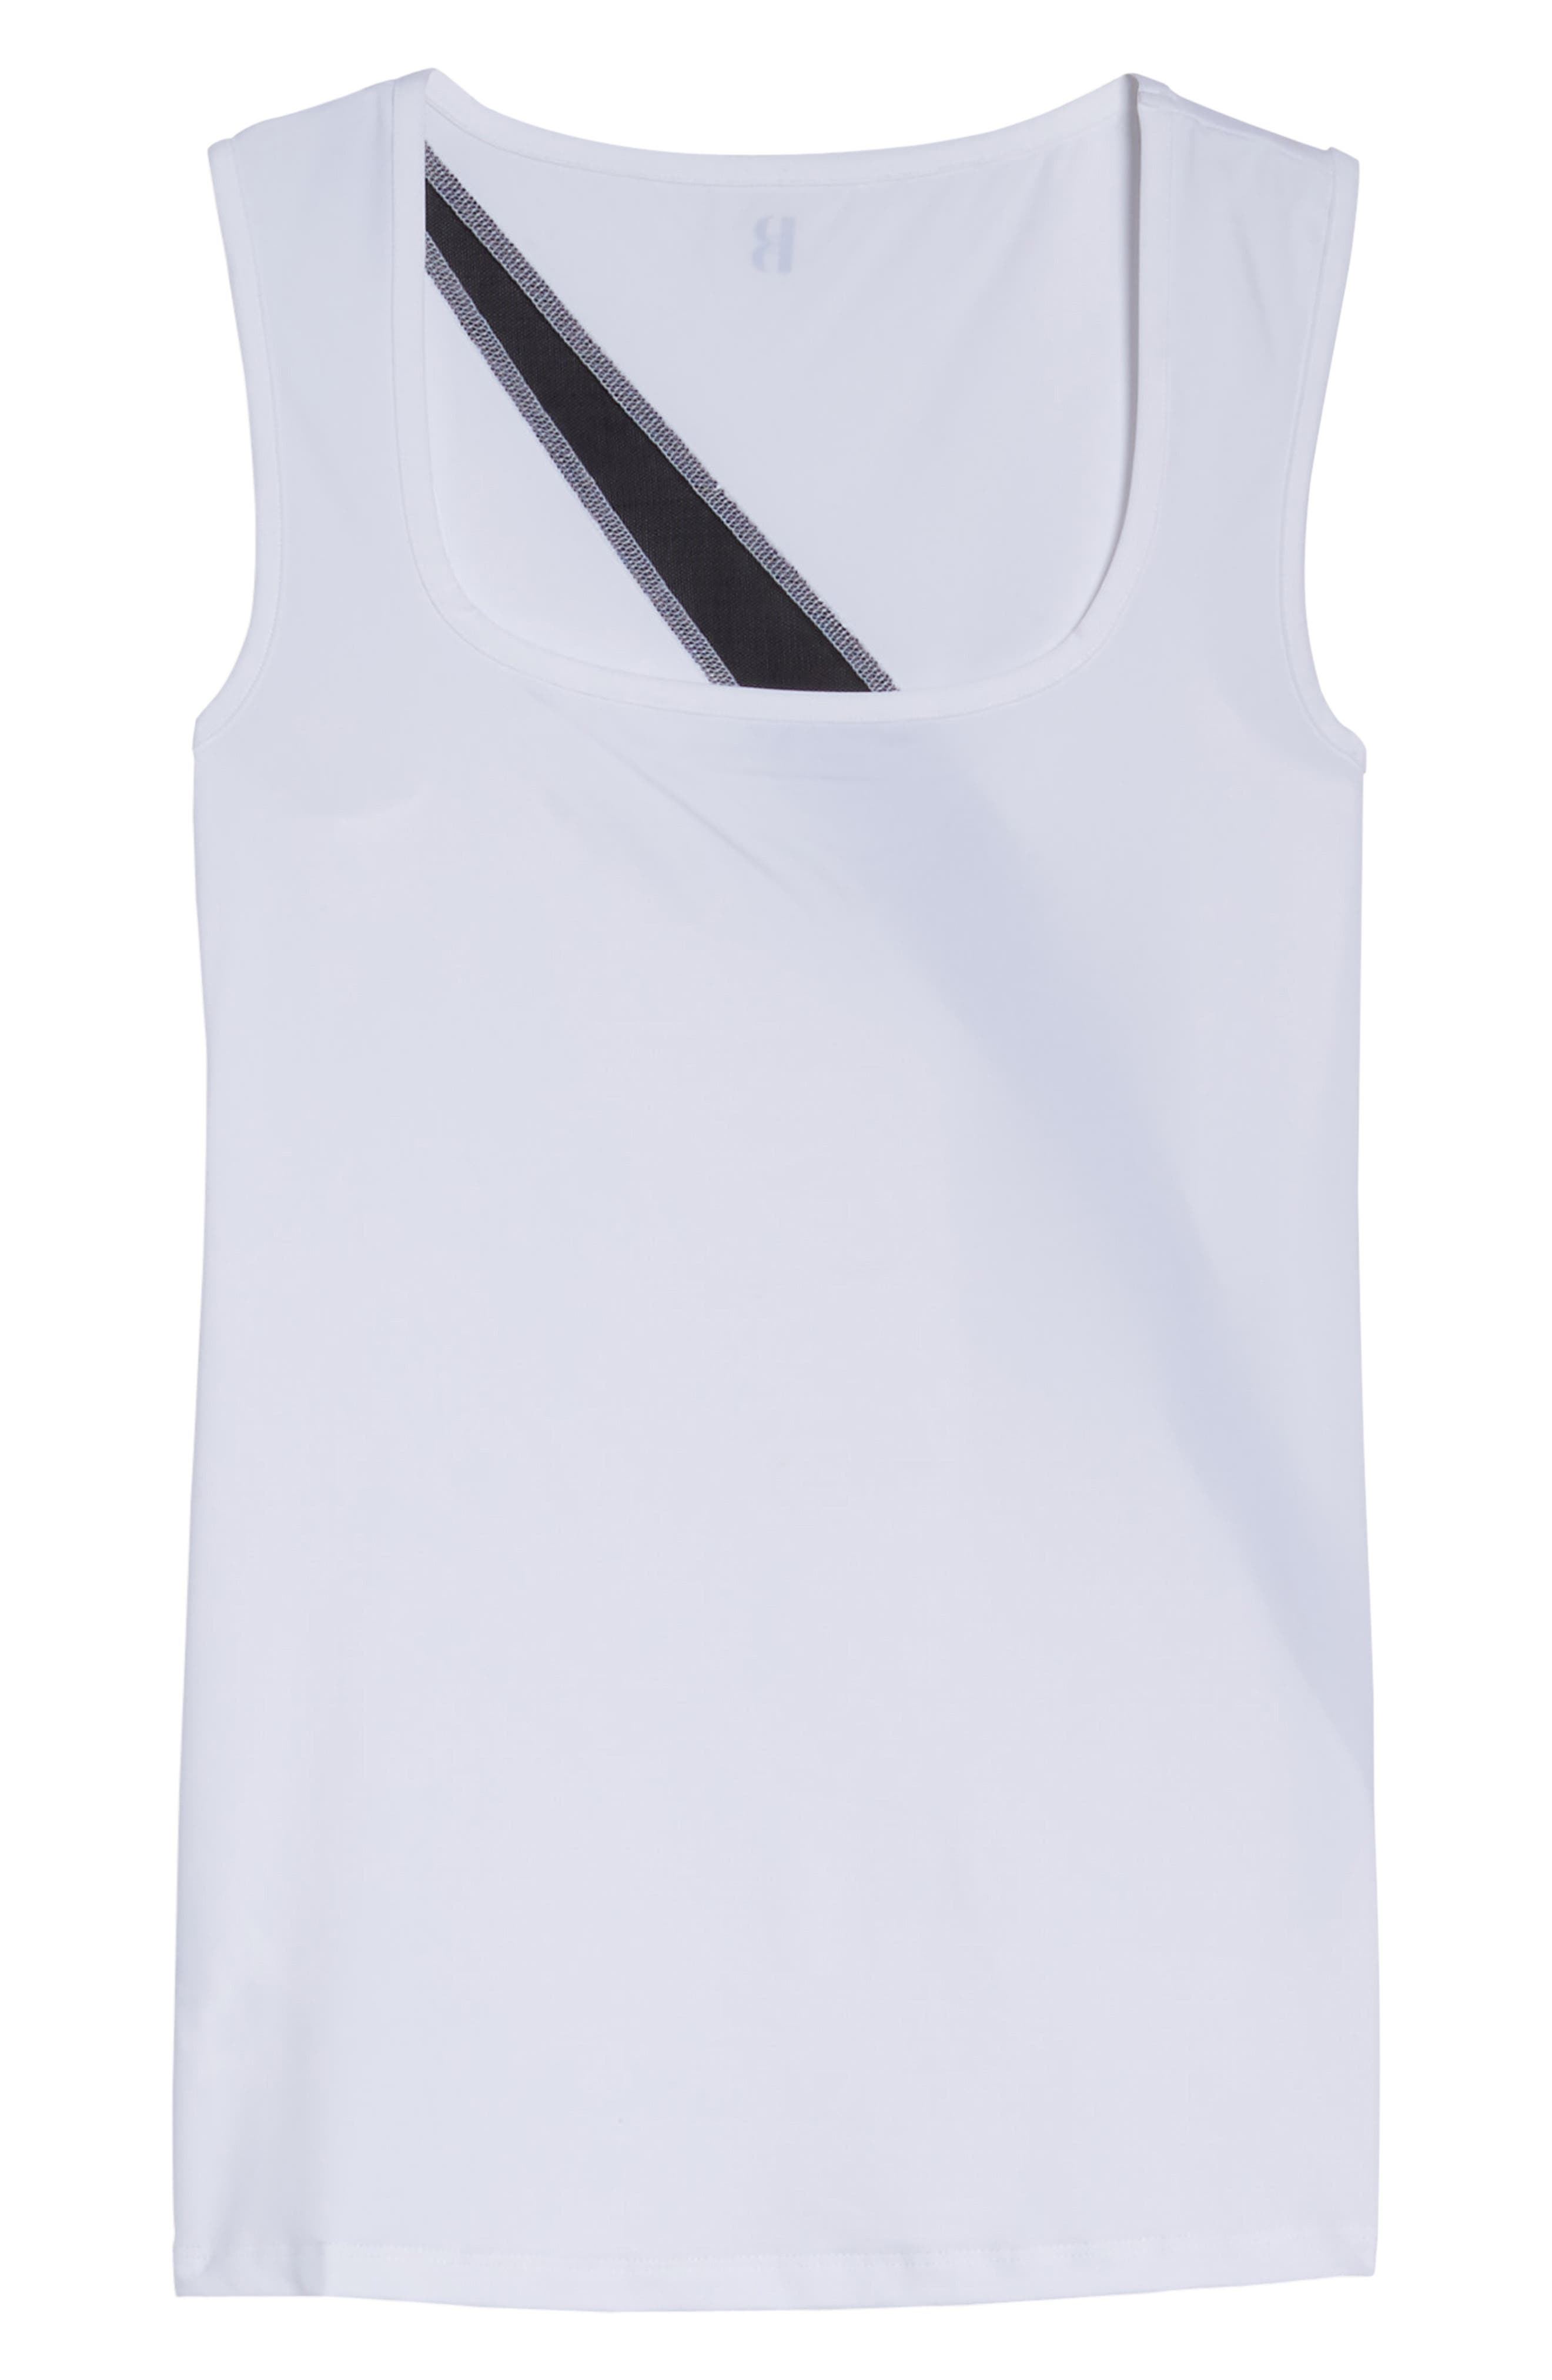 BoomBoom Athletica Sport Racerback Tank,                             Alternate thumbnail 7, color,                             100